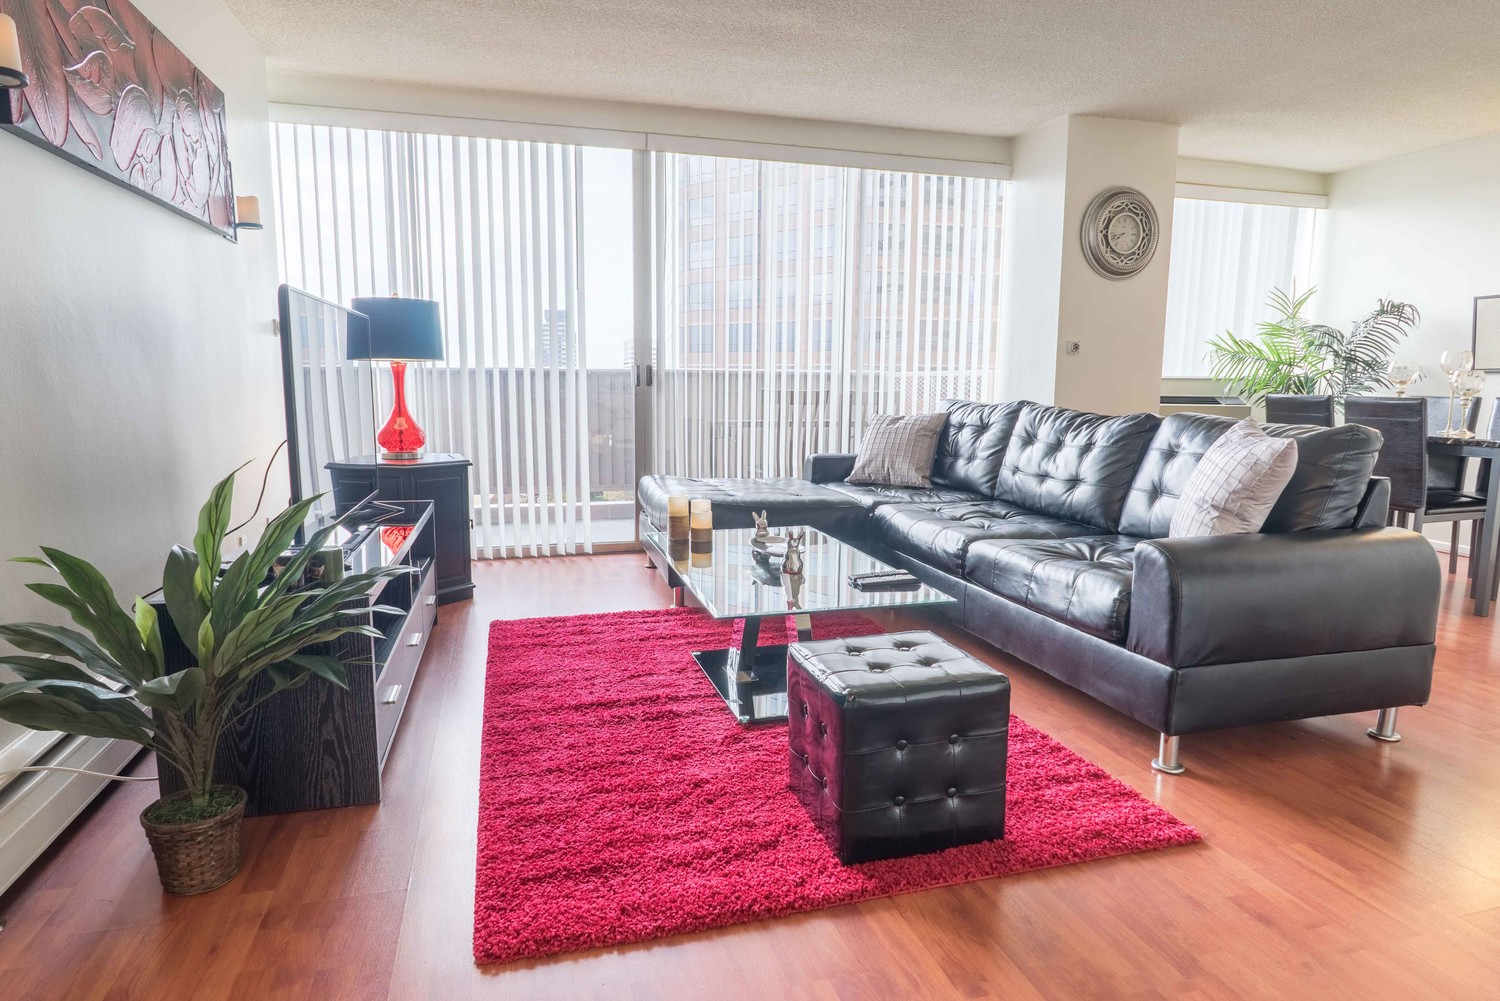 2 bd 2 bath Private room for rent at Barrington Plaza